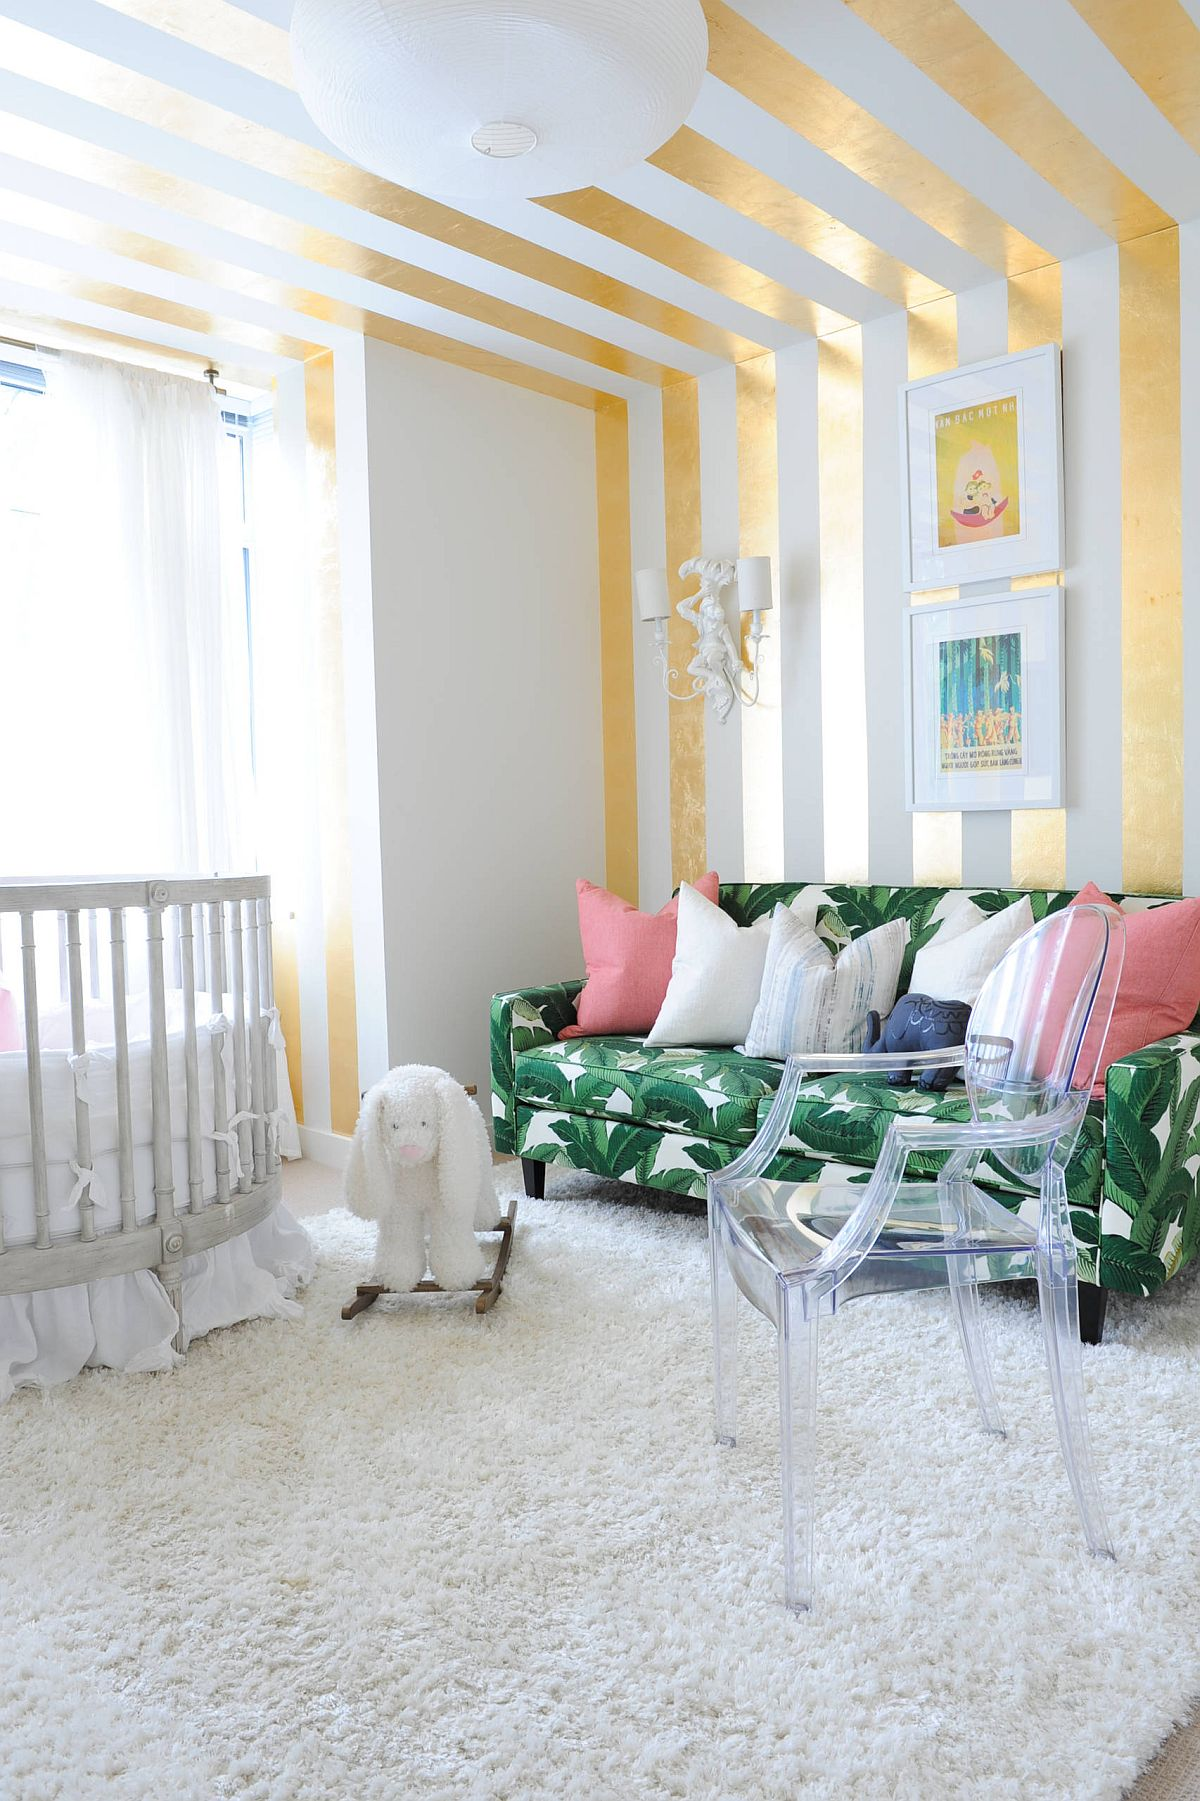 Gold stripes add glitter to the small eclectic nursery